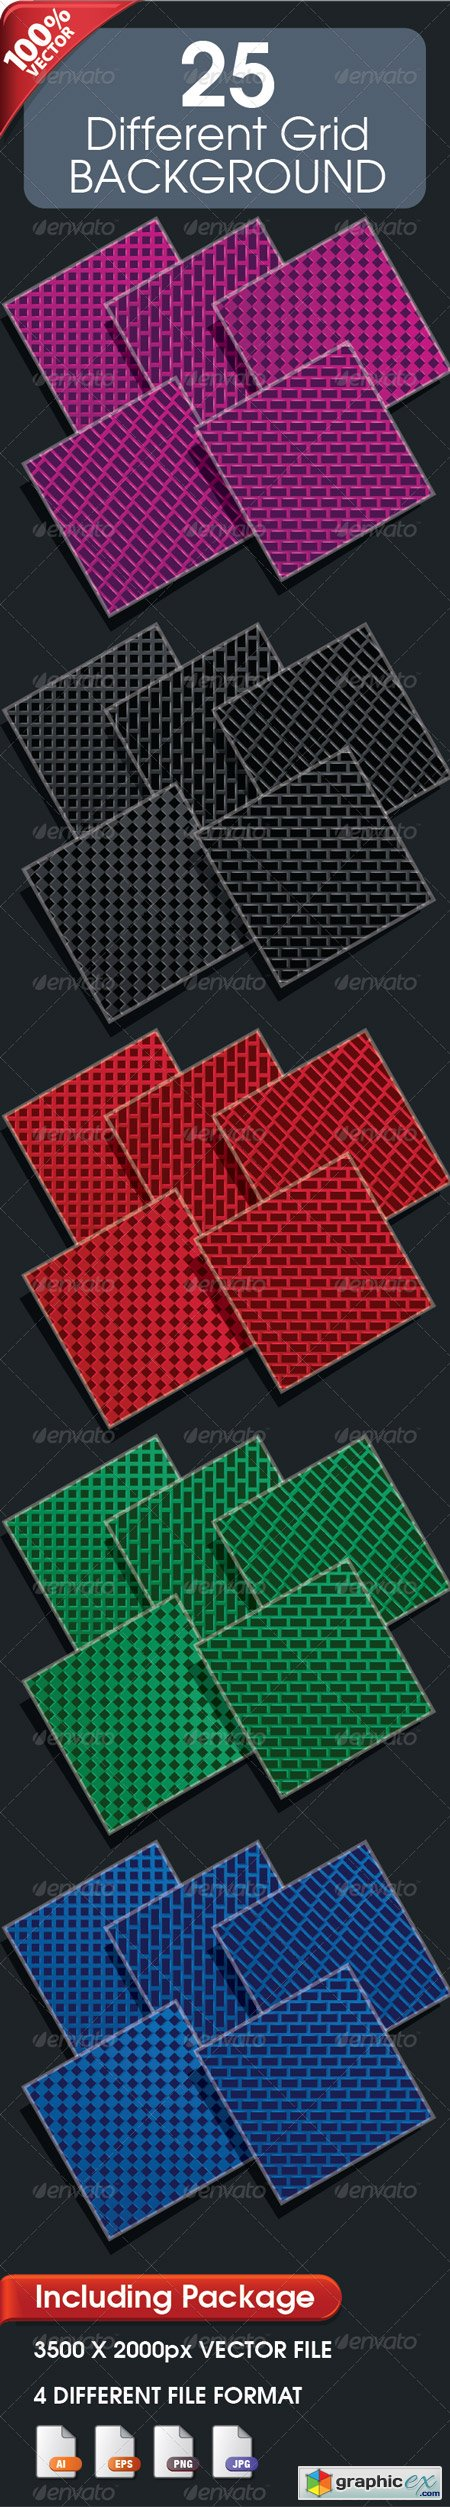 25 Different Grid Background